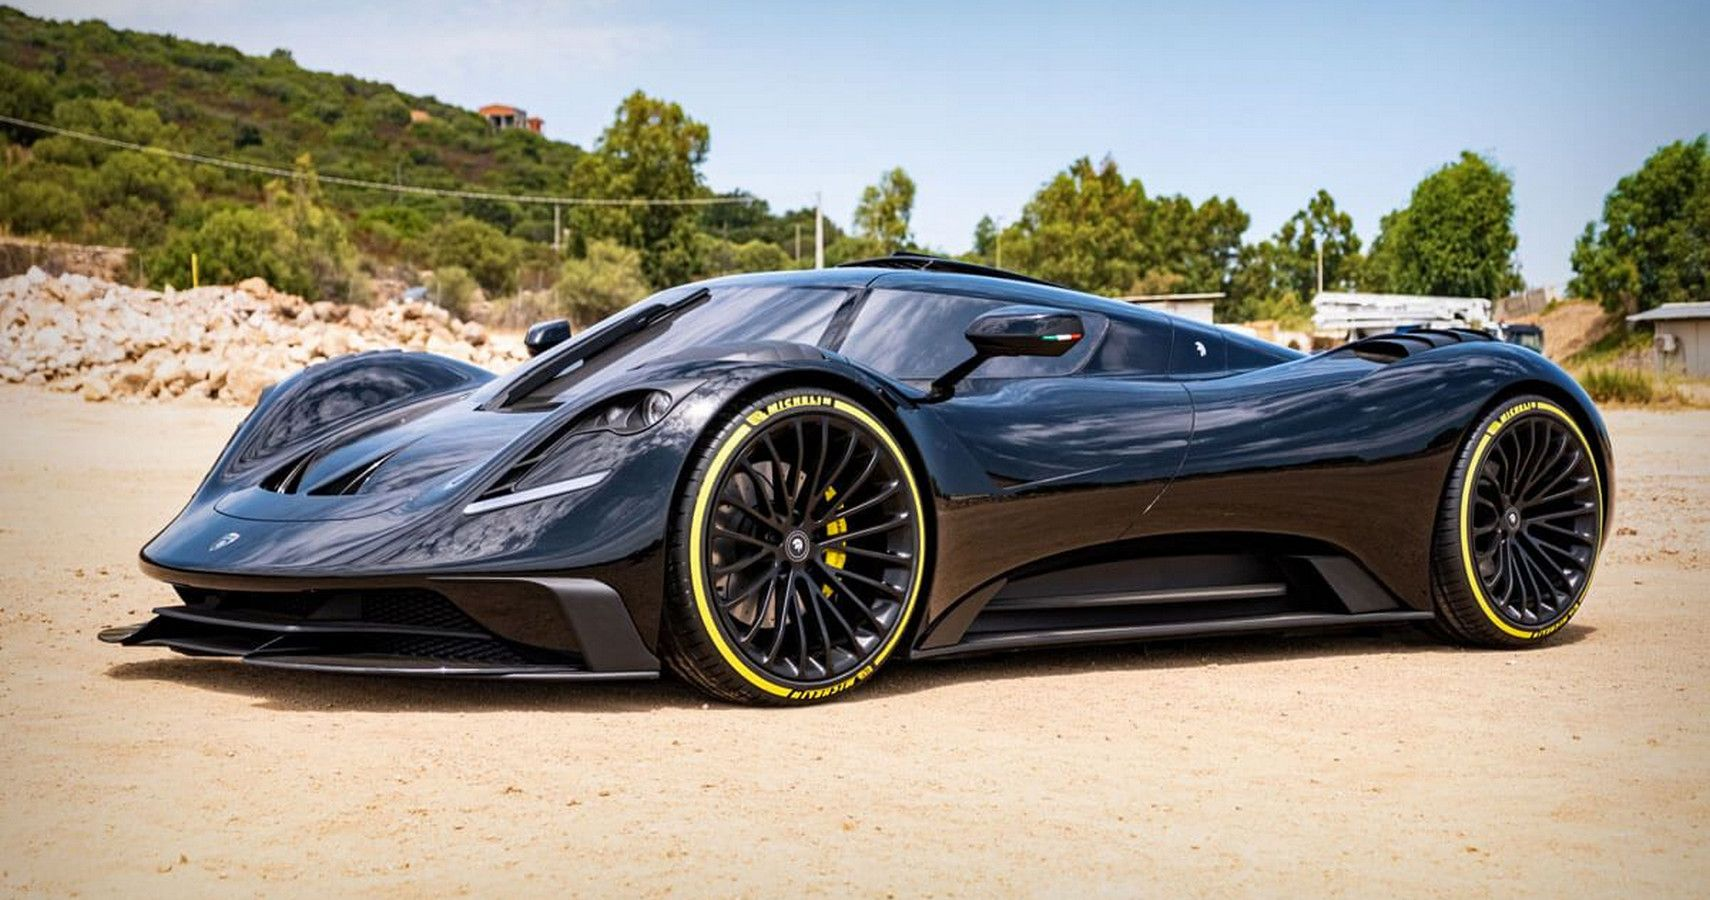 10 Insane Hypercars From Manufacturers No One Has Heard Of